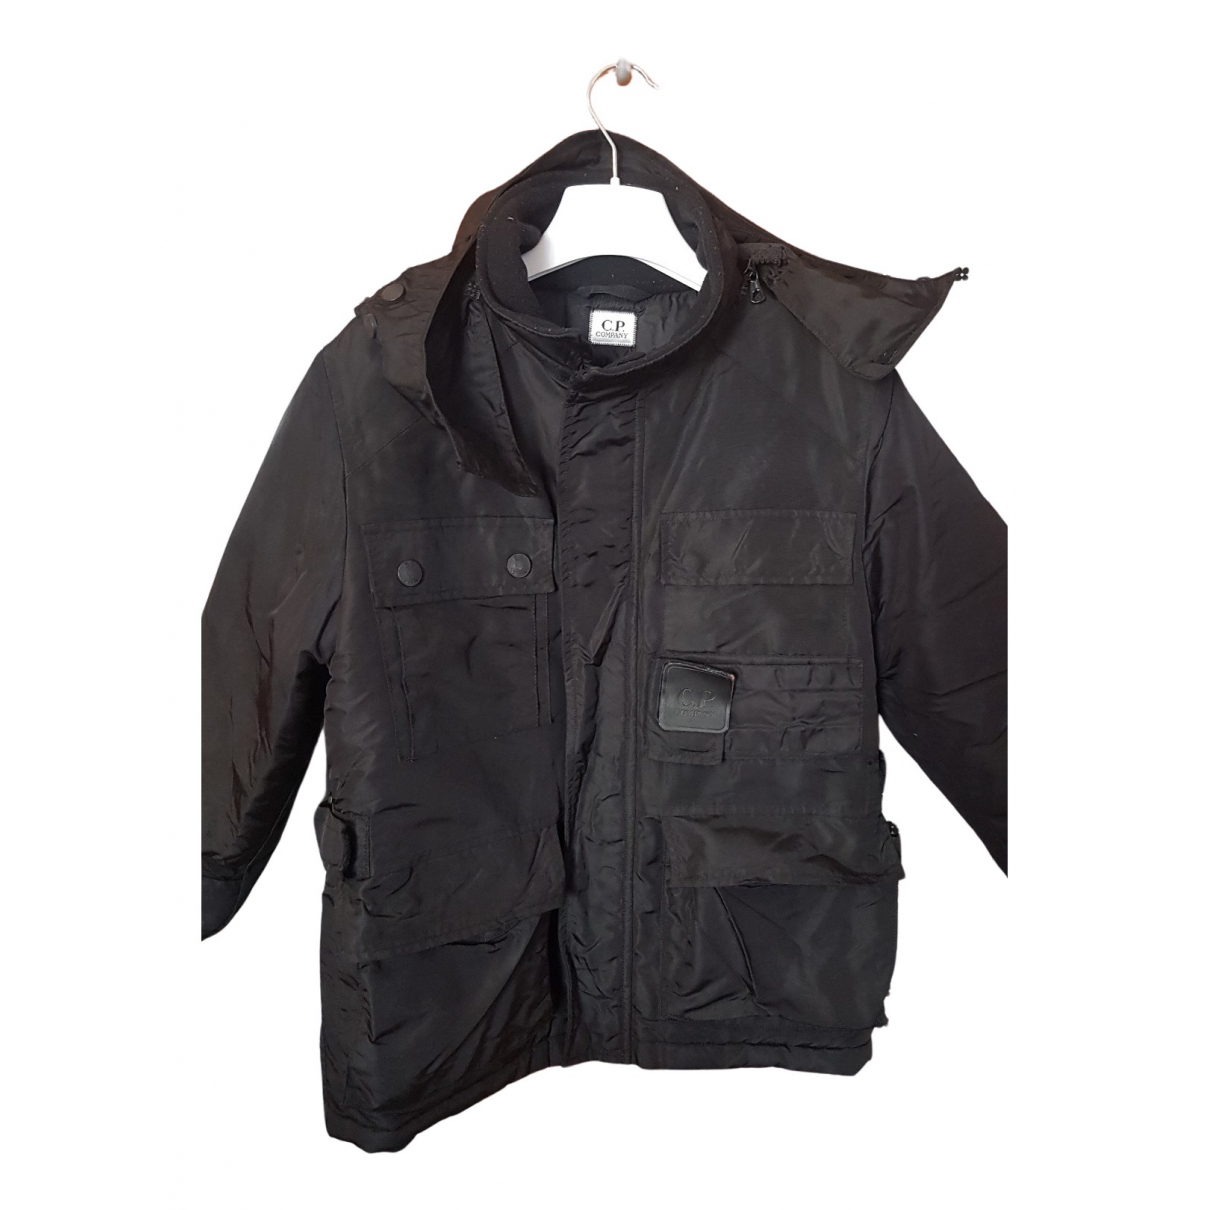 Cp Company N Black jacket & coat for Kids 8 years - up to 128cm FR